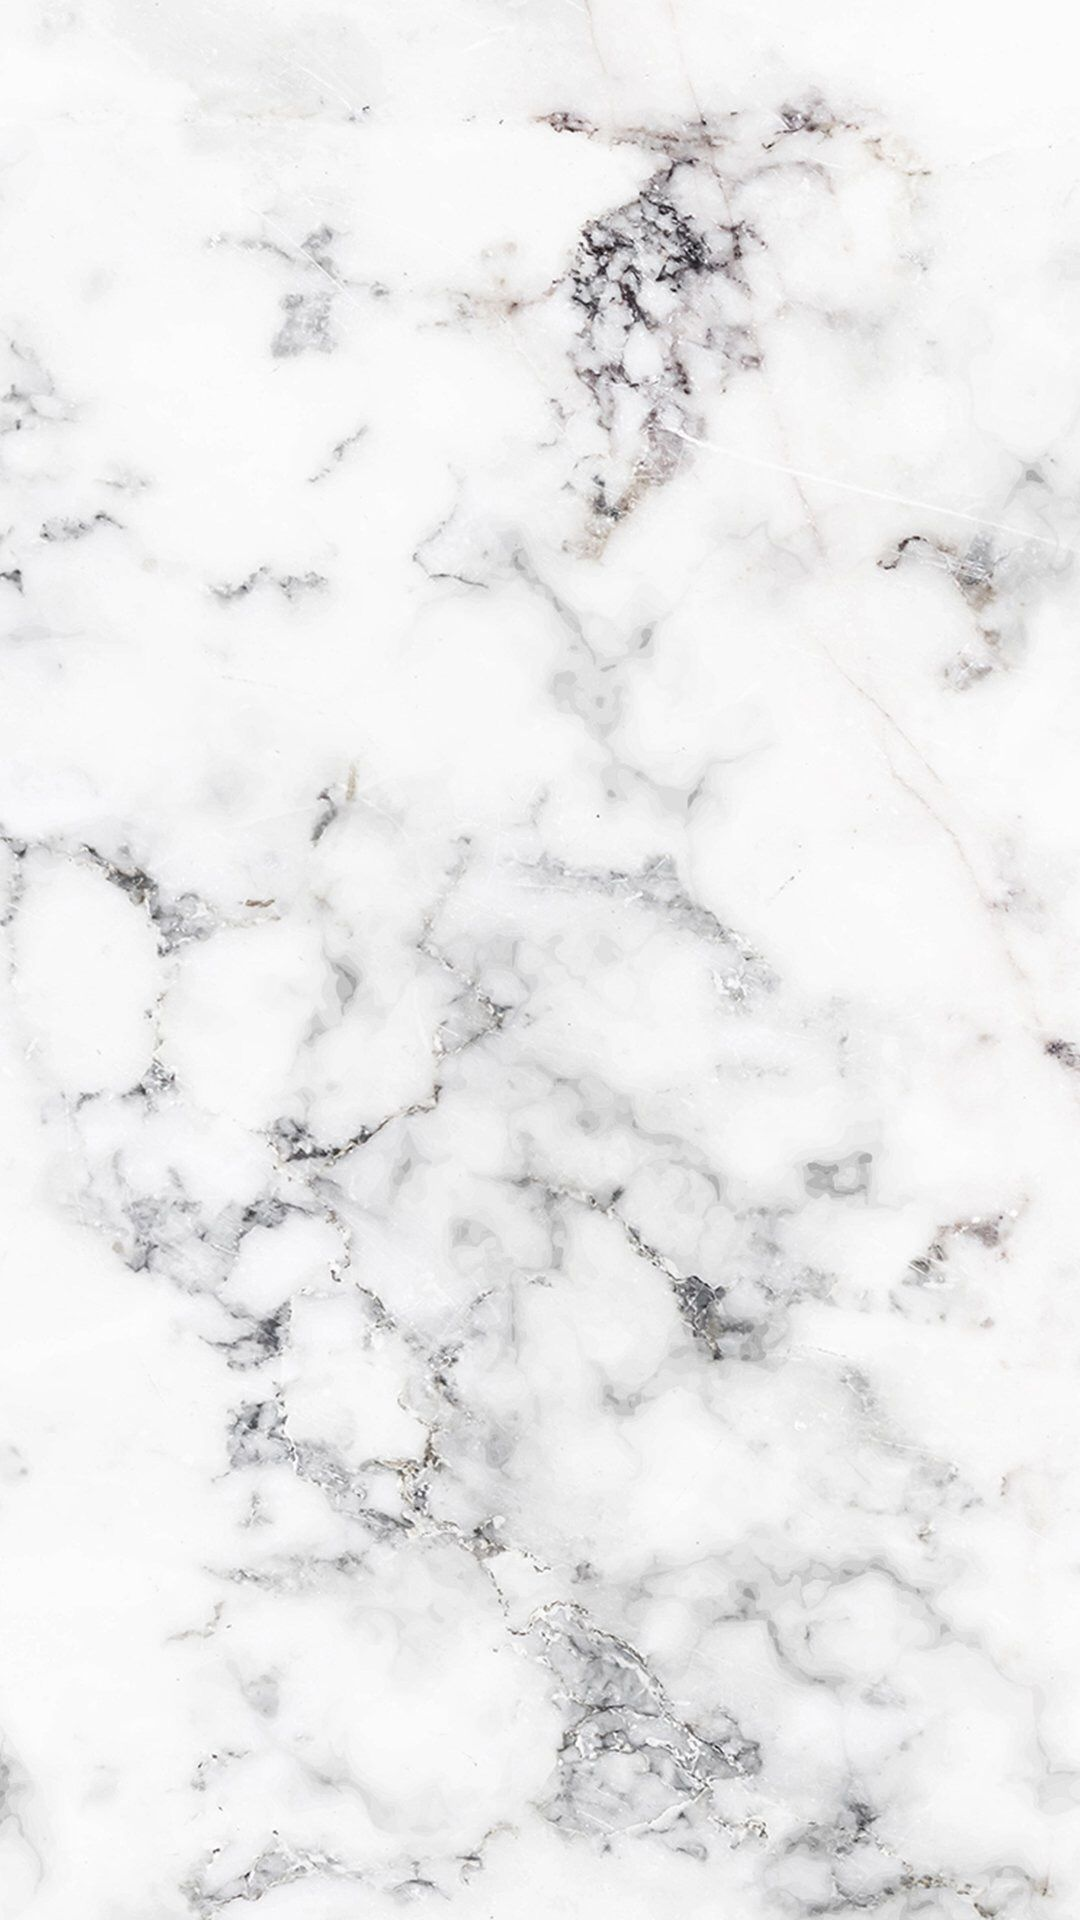 Aesthetic White Wallpapers - Top Free Aesthetic White ...